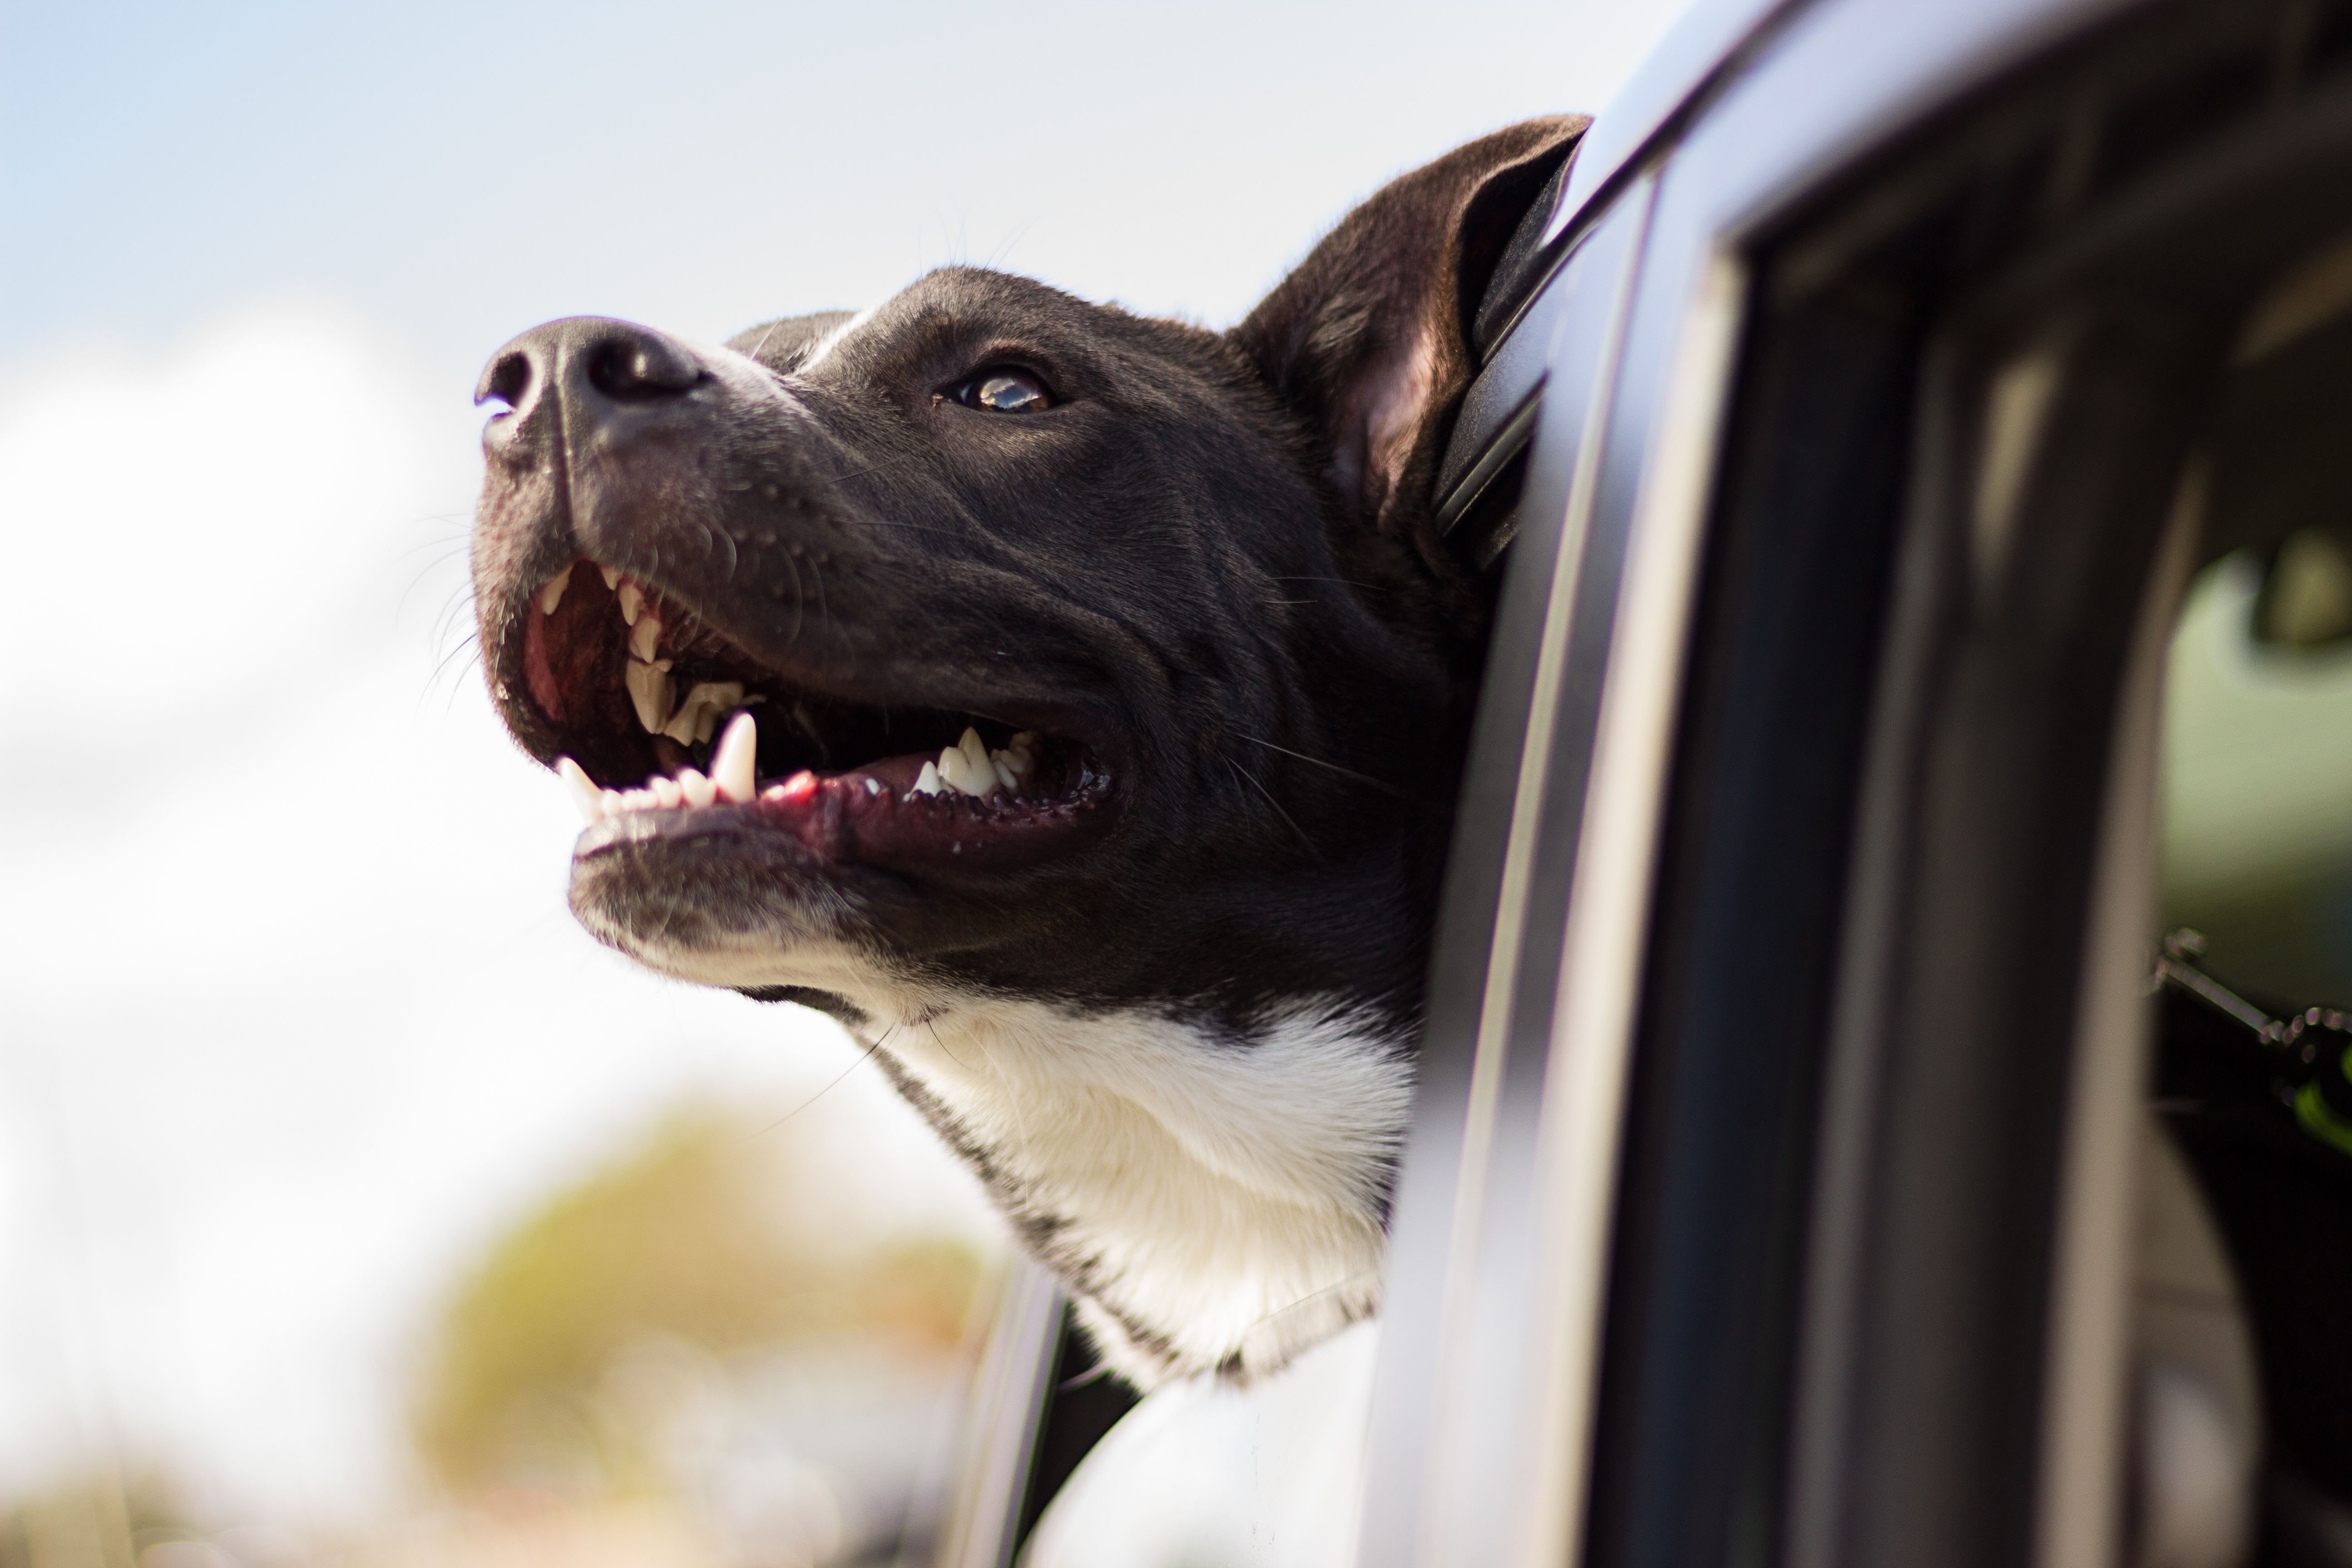 Dog travel accessories - dog hanging head out of window